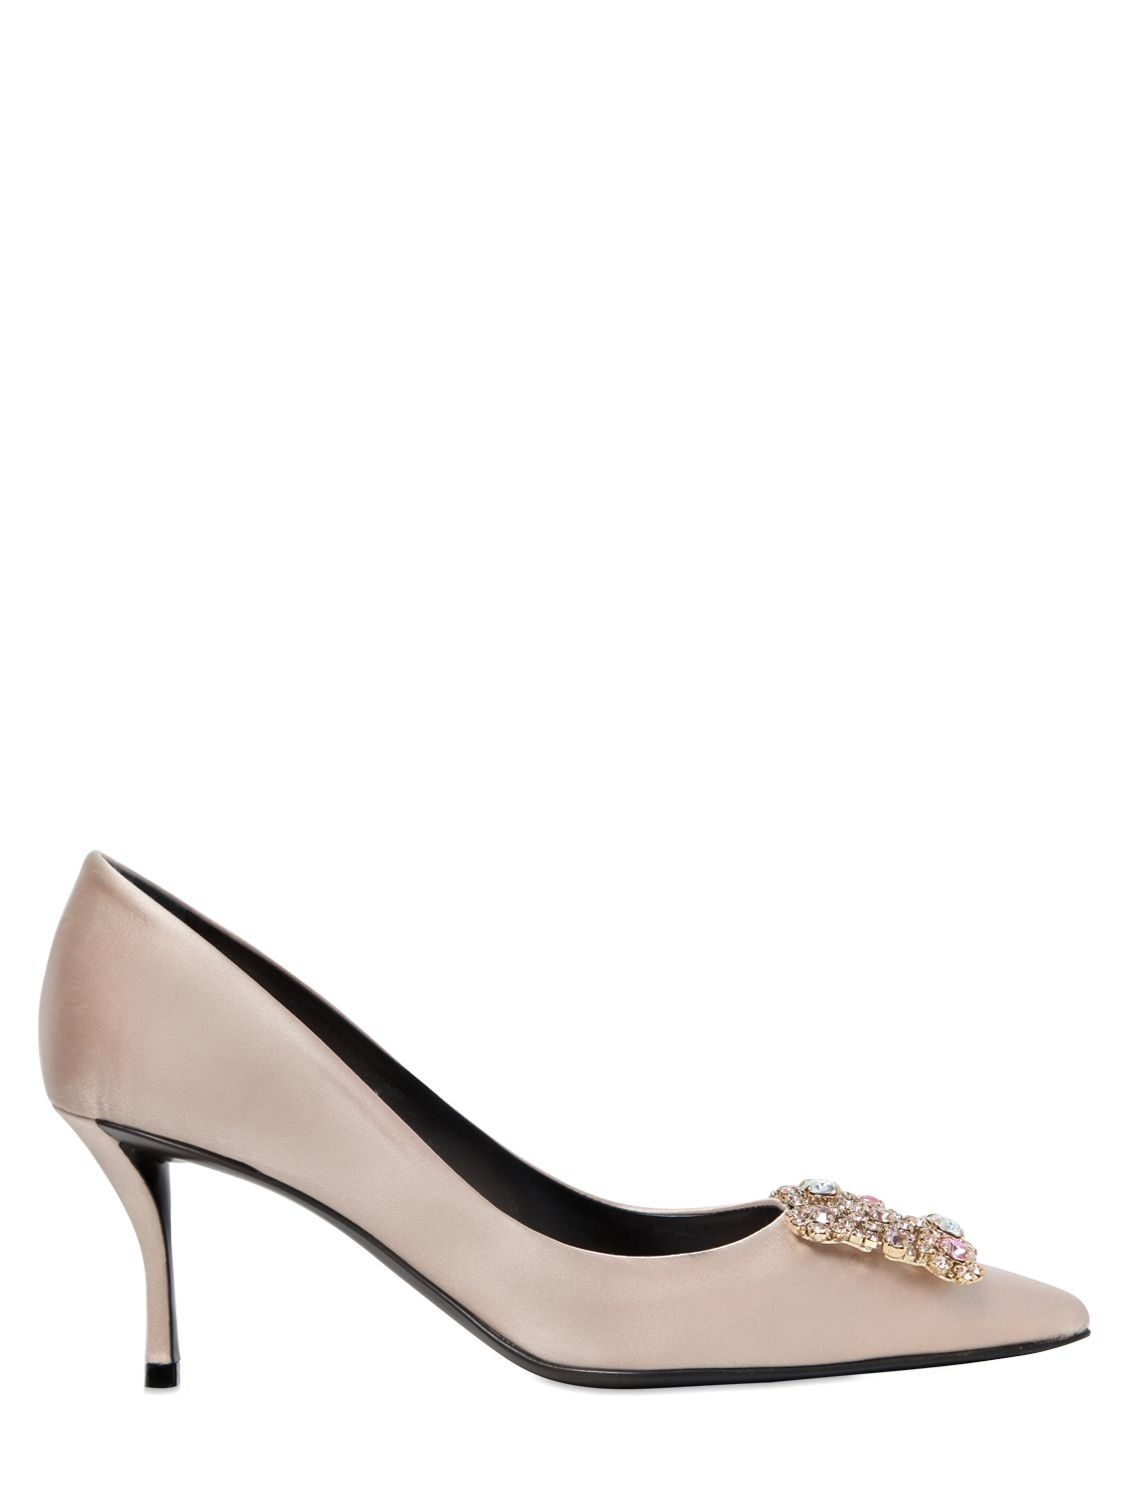 Roger Vivier65MM FLOWER SATIN SLINGBACK PUMPS